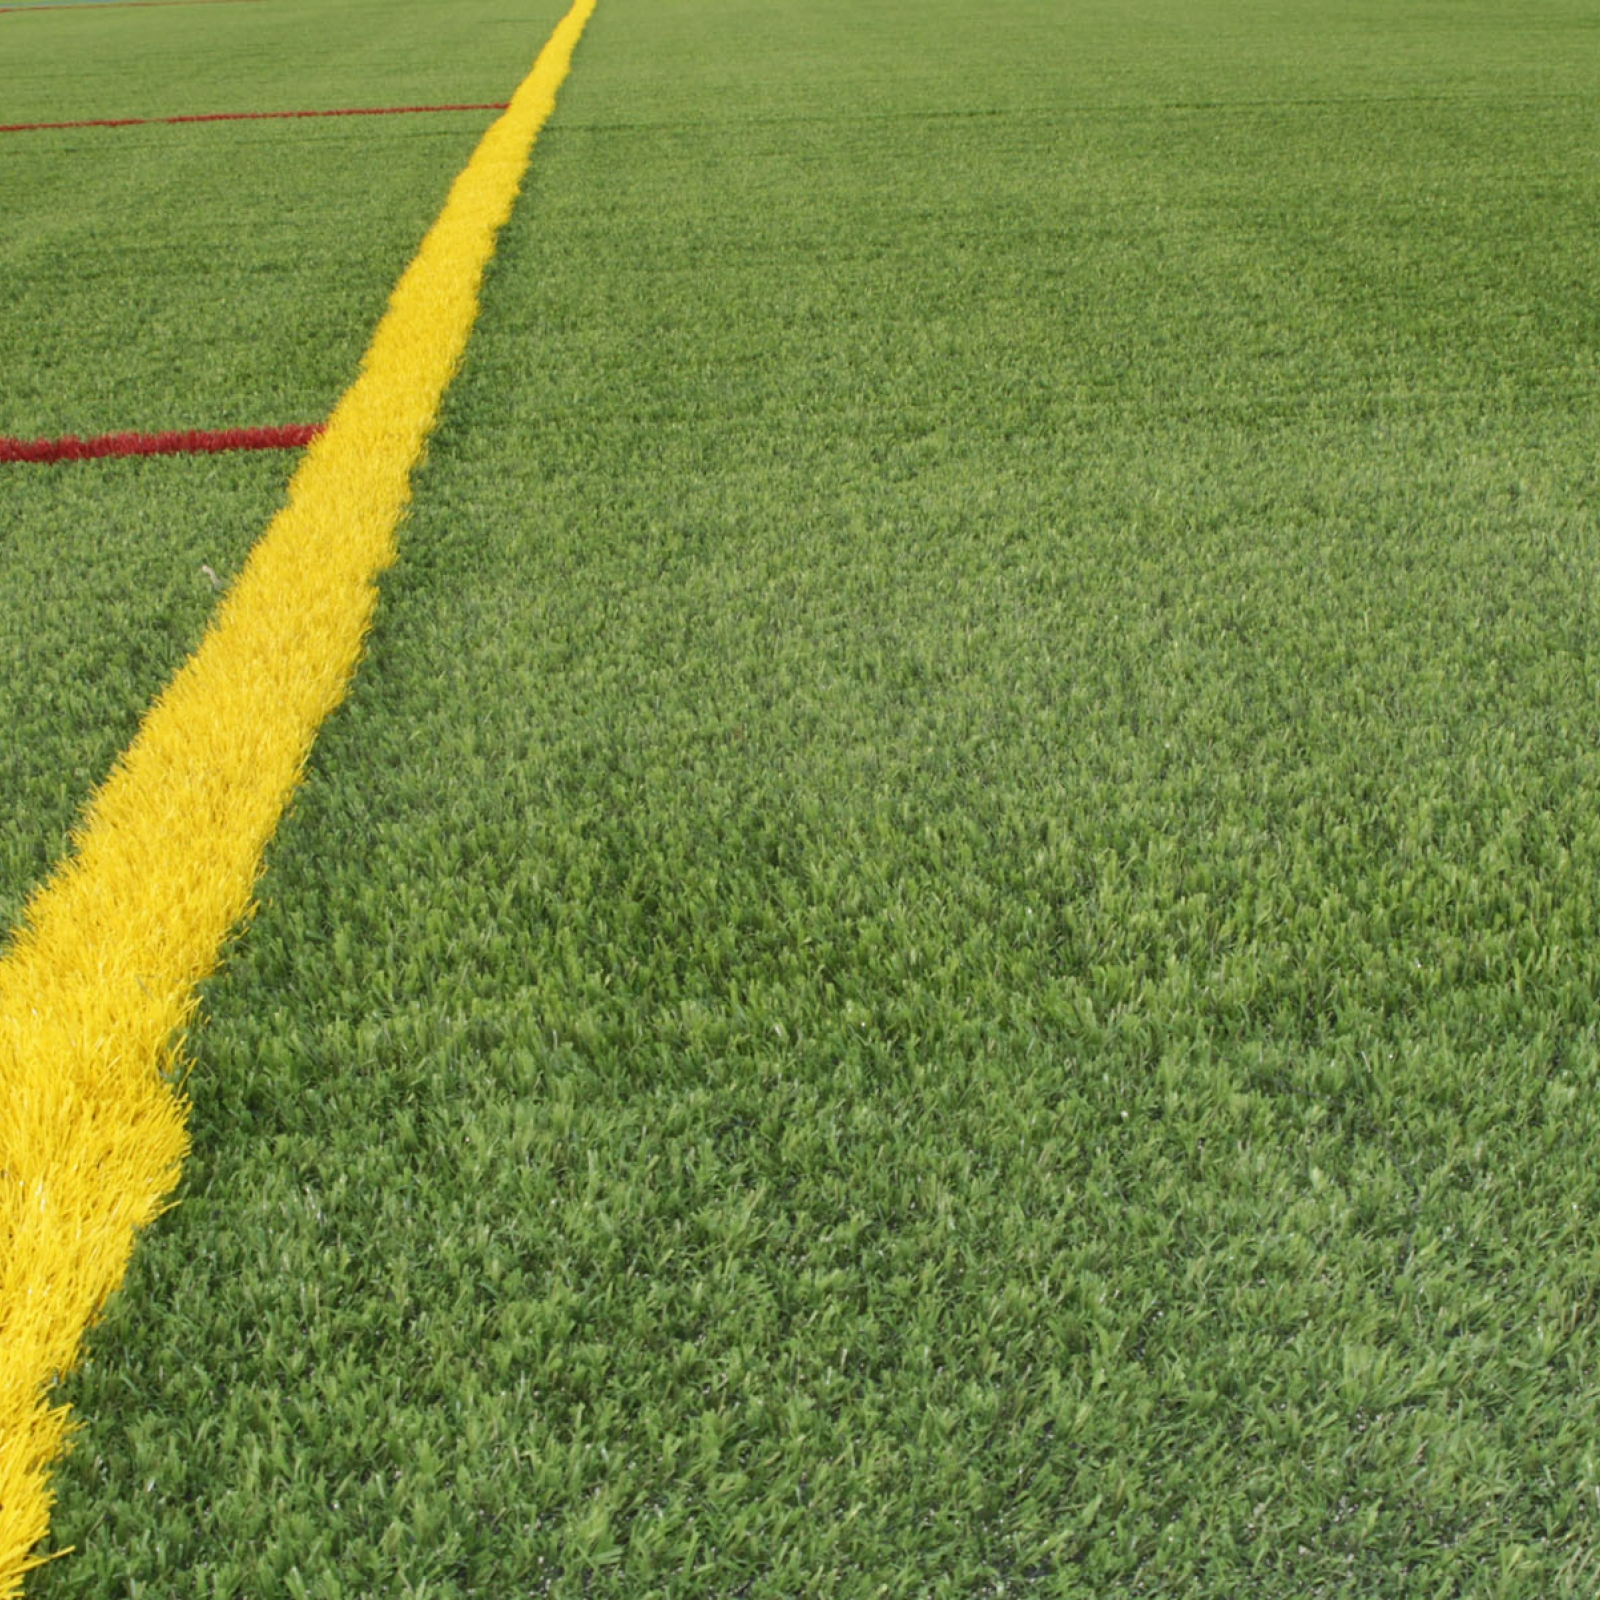 Sports stadium synthetic turf yellow line red line green turf multi-purpose field green grass artificial fake grass